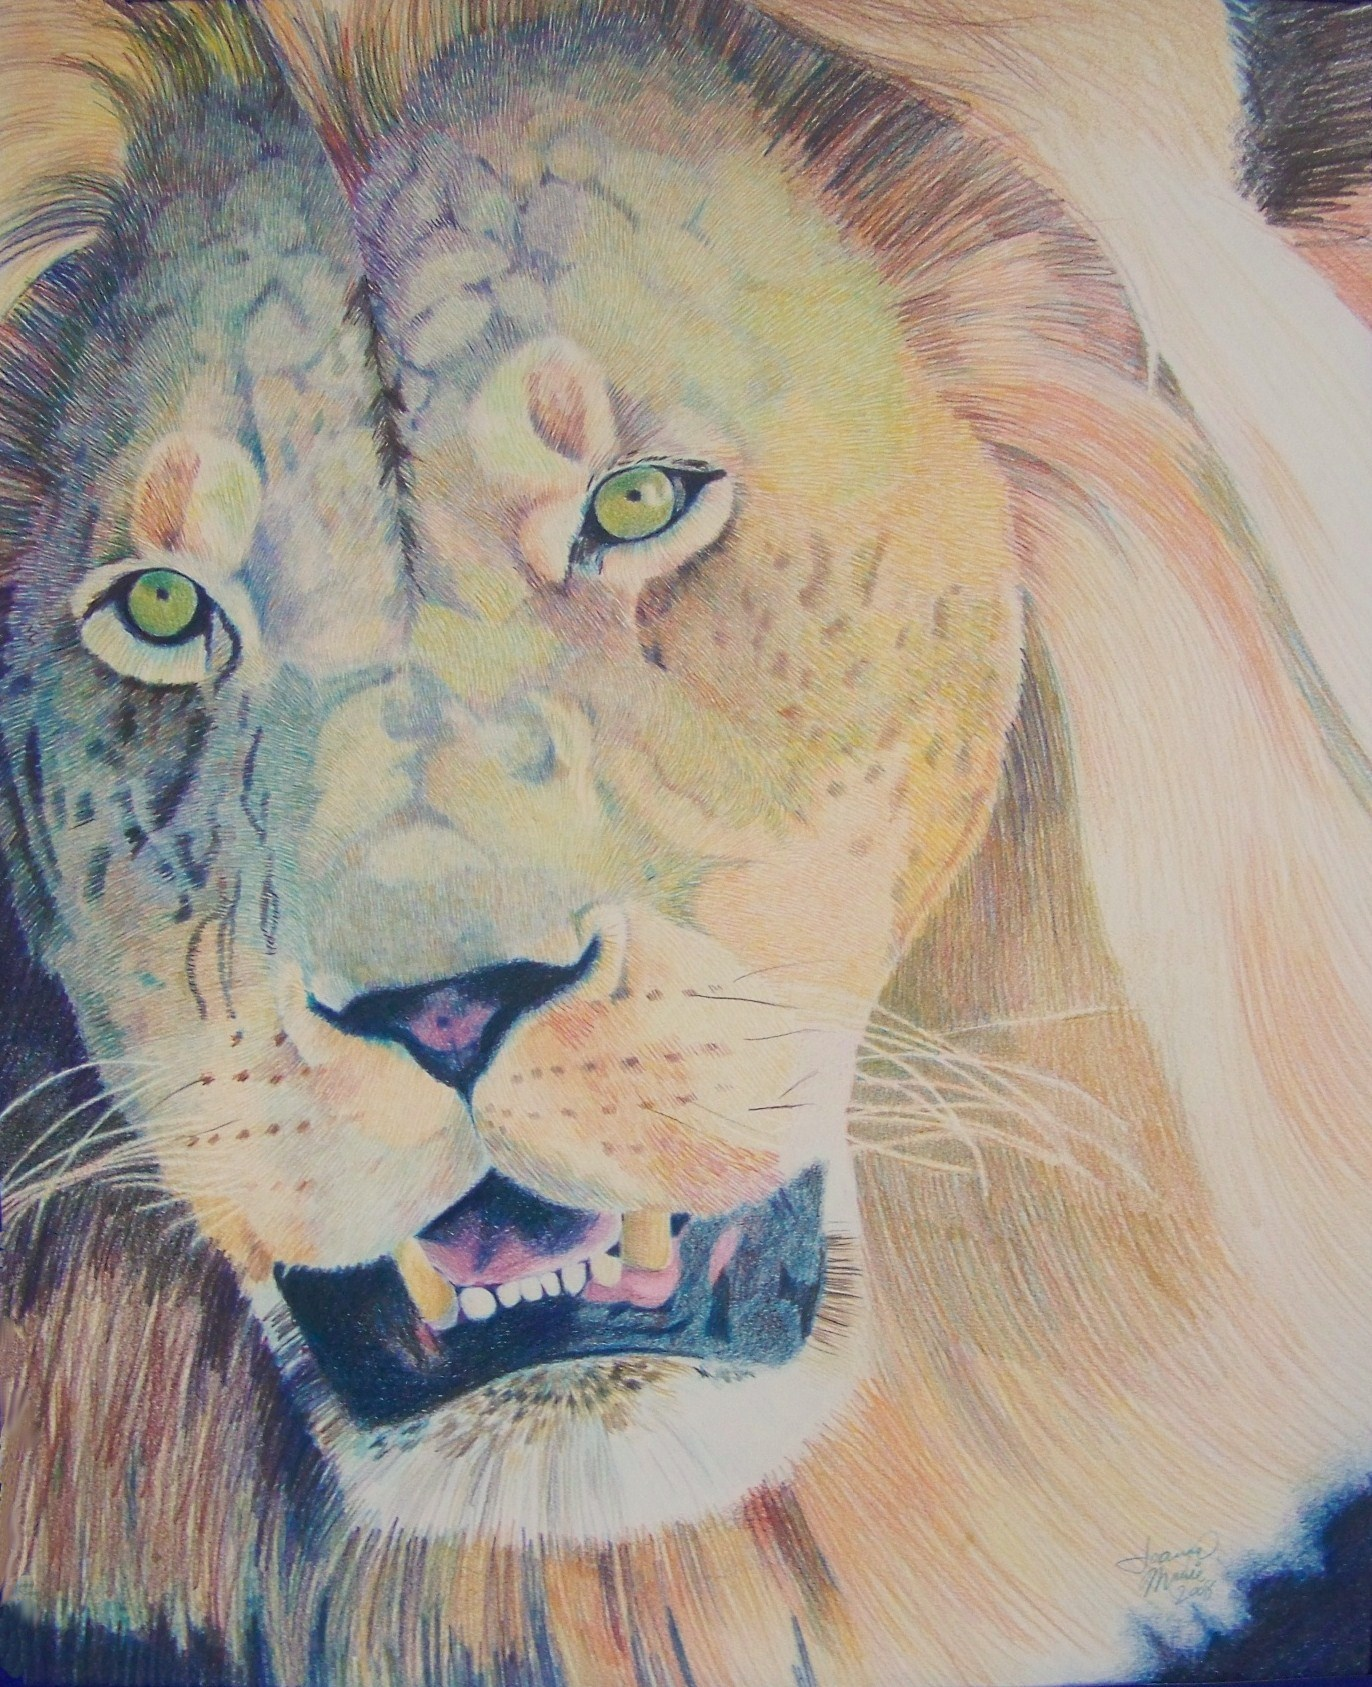 Golden Courage, 2008, 16x20, Colored Pencil